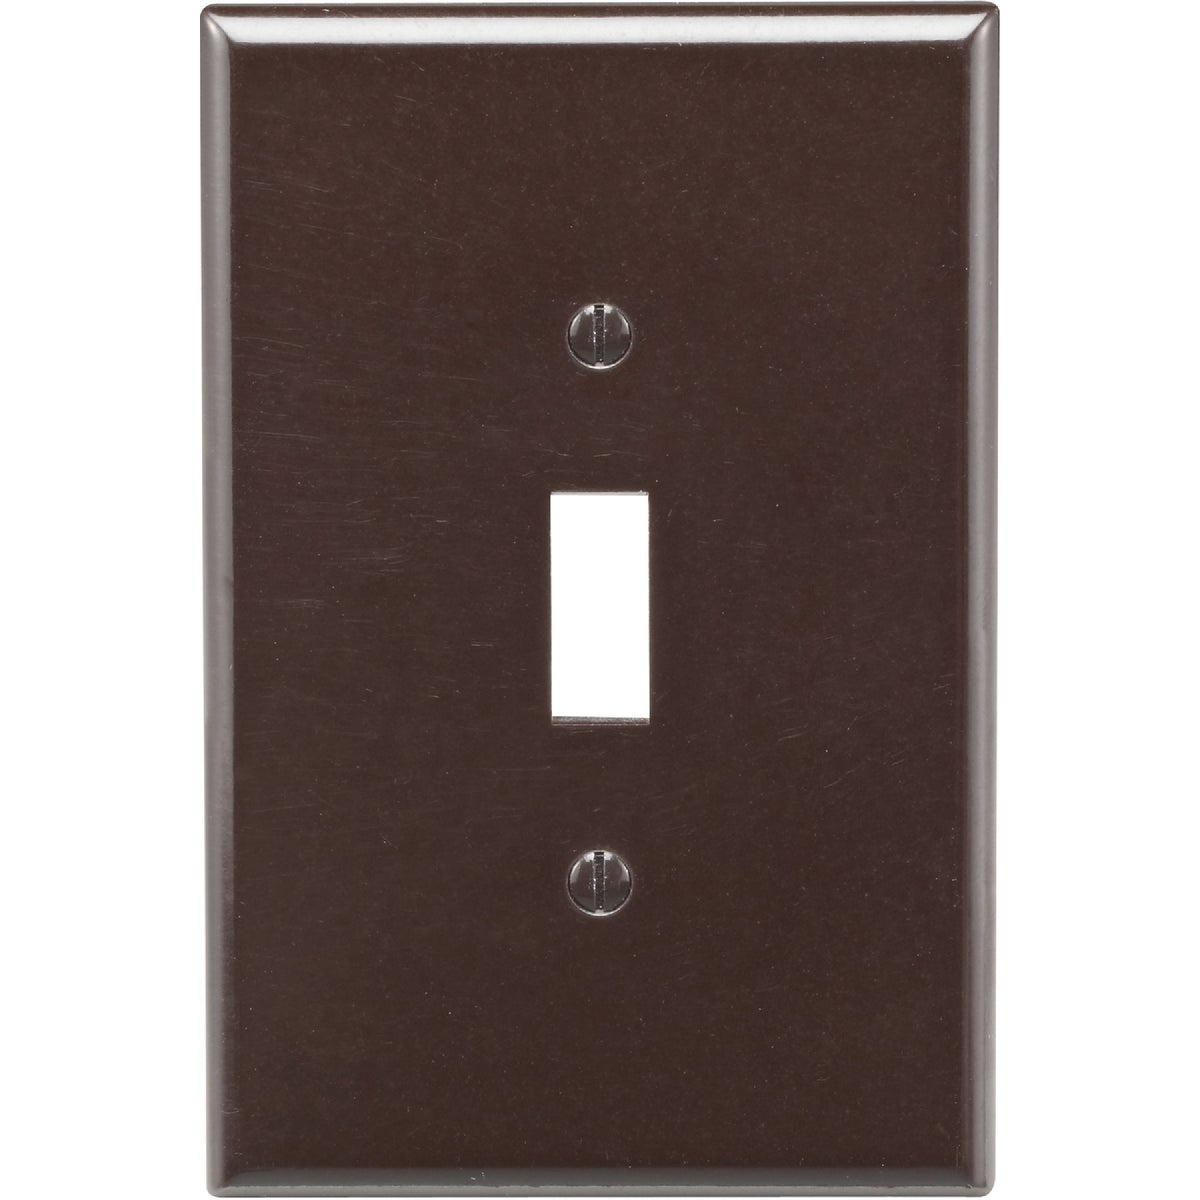 BRN 1-TOGGLE WALL PLATE - 85101 by Leviton Mfg Co